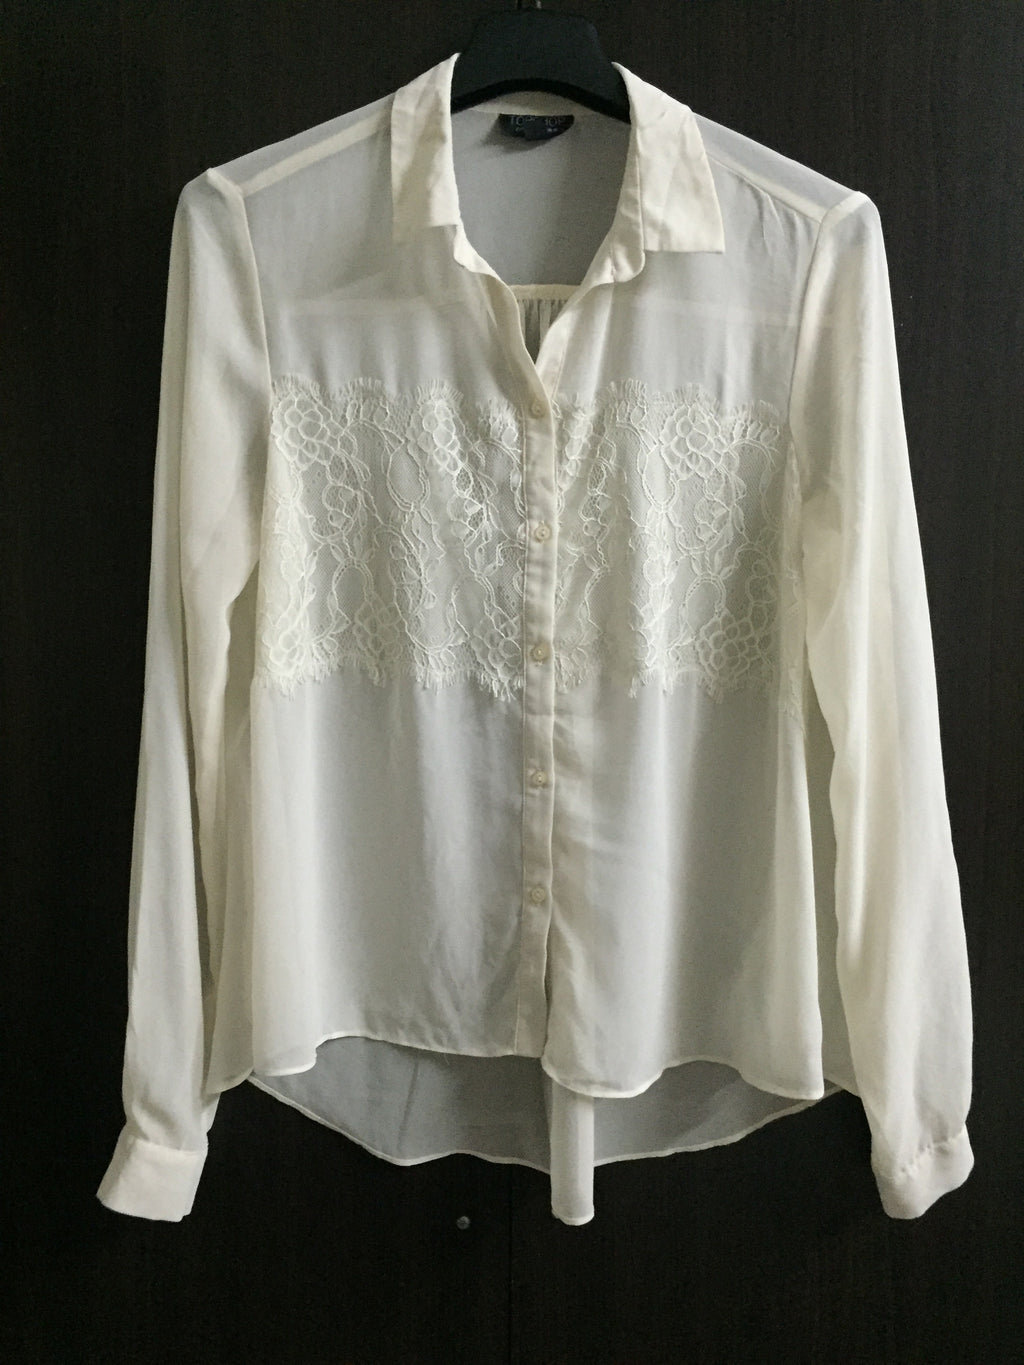 Comfy Fit - Cream High/Low shirt with Lace on front